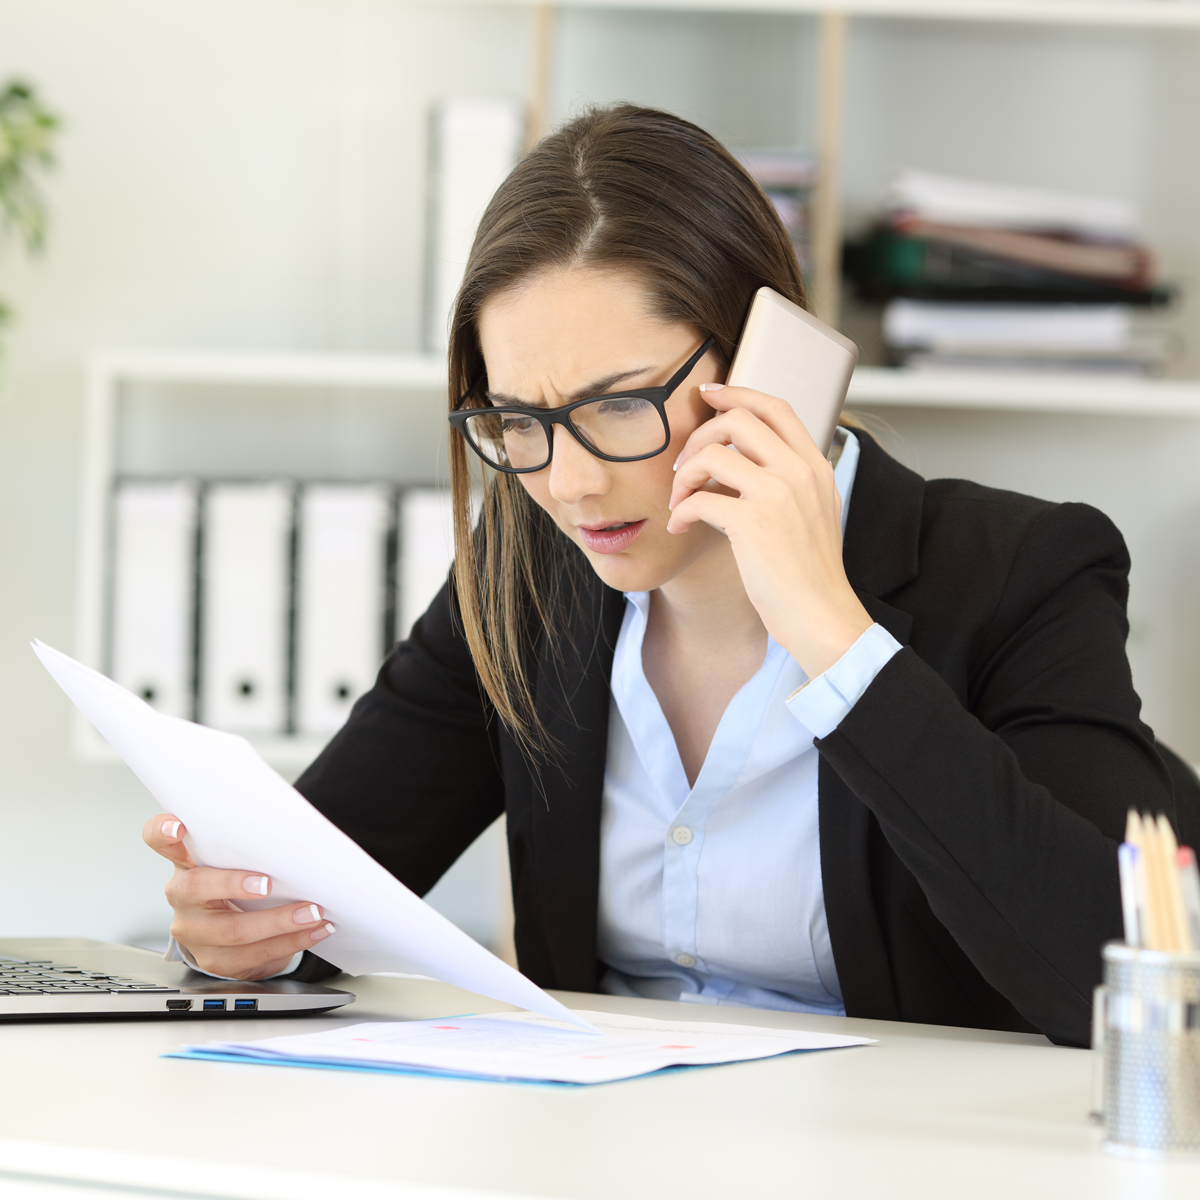 Businesswoman on the phone while reading a report